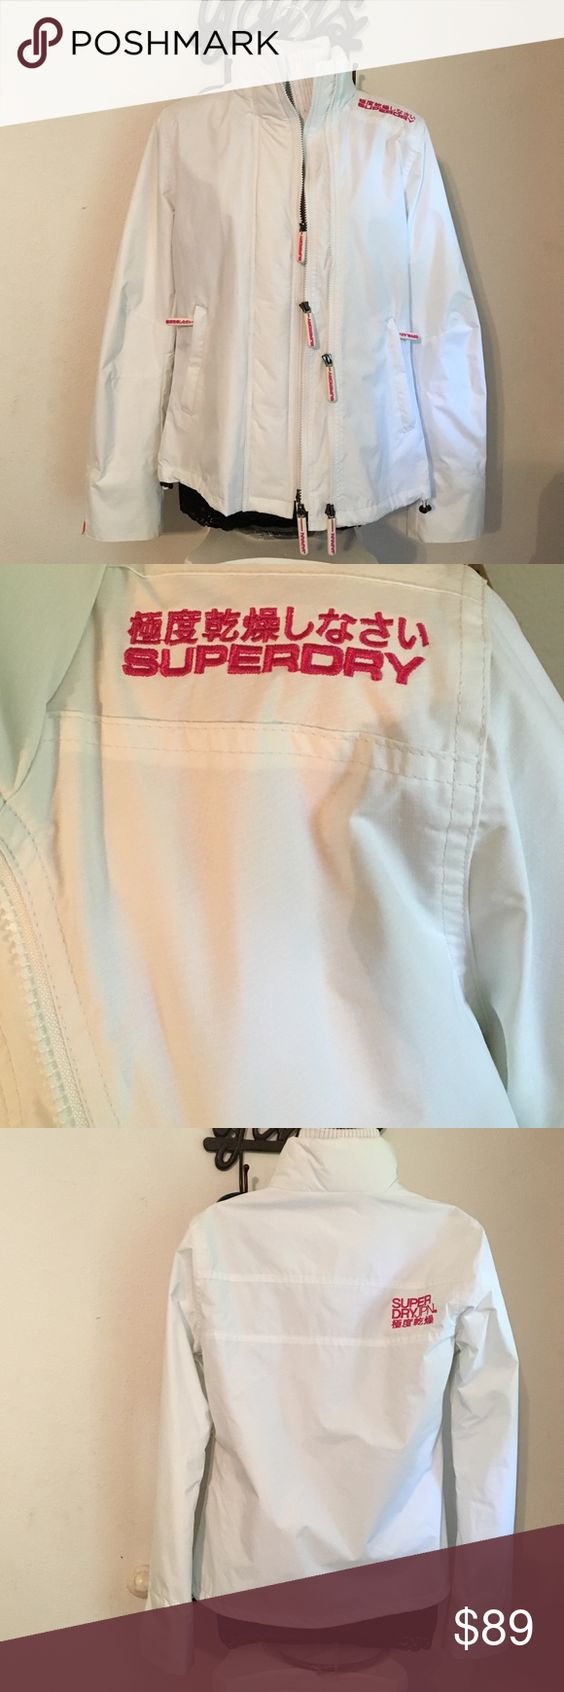 Superdry Japan The wind heater New with tag. Superdry Jackets & Coats